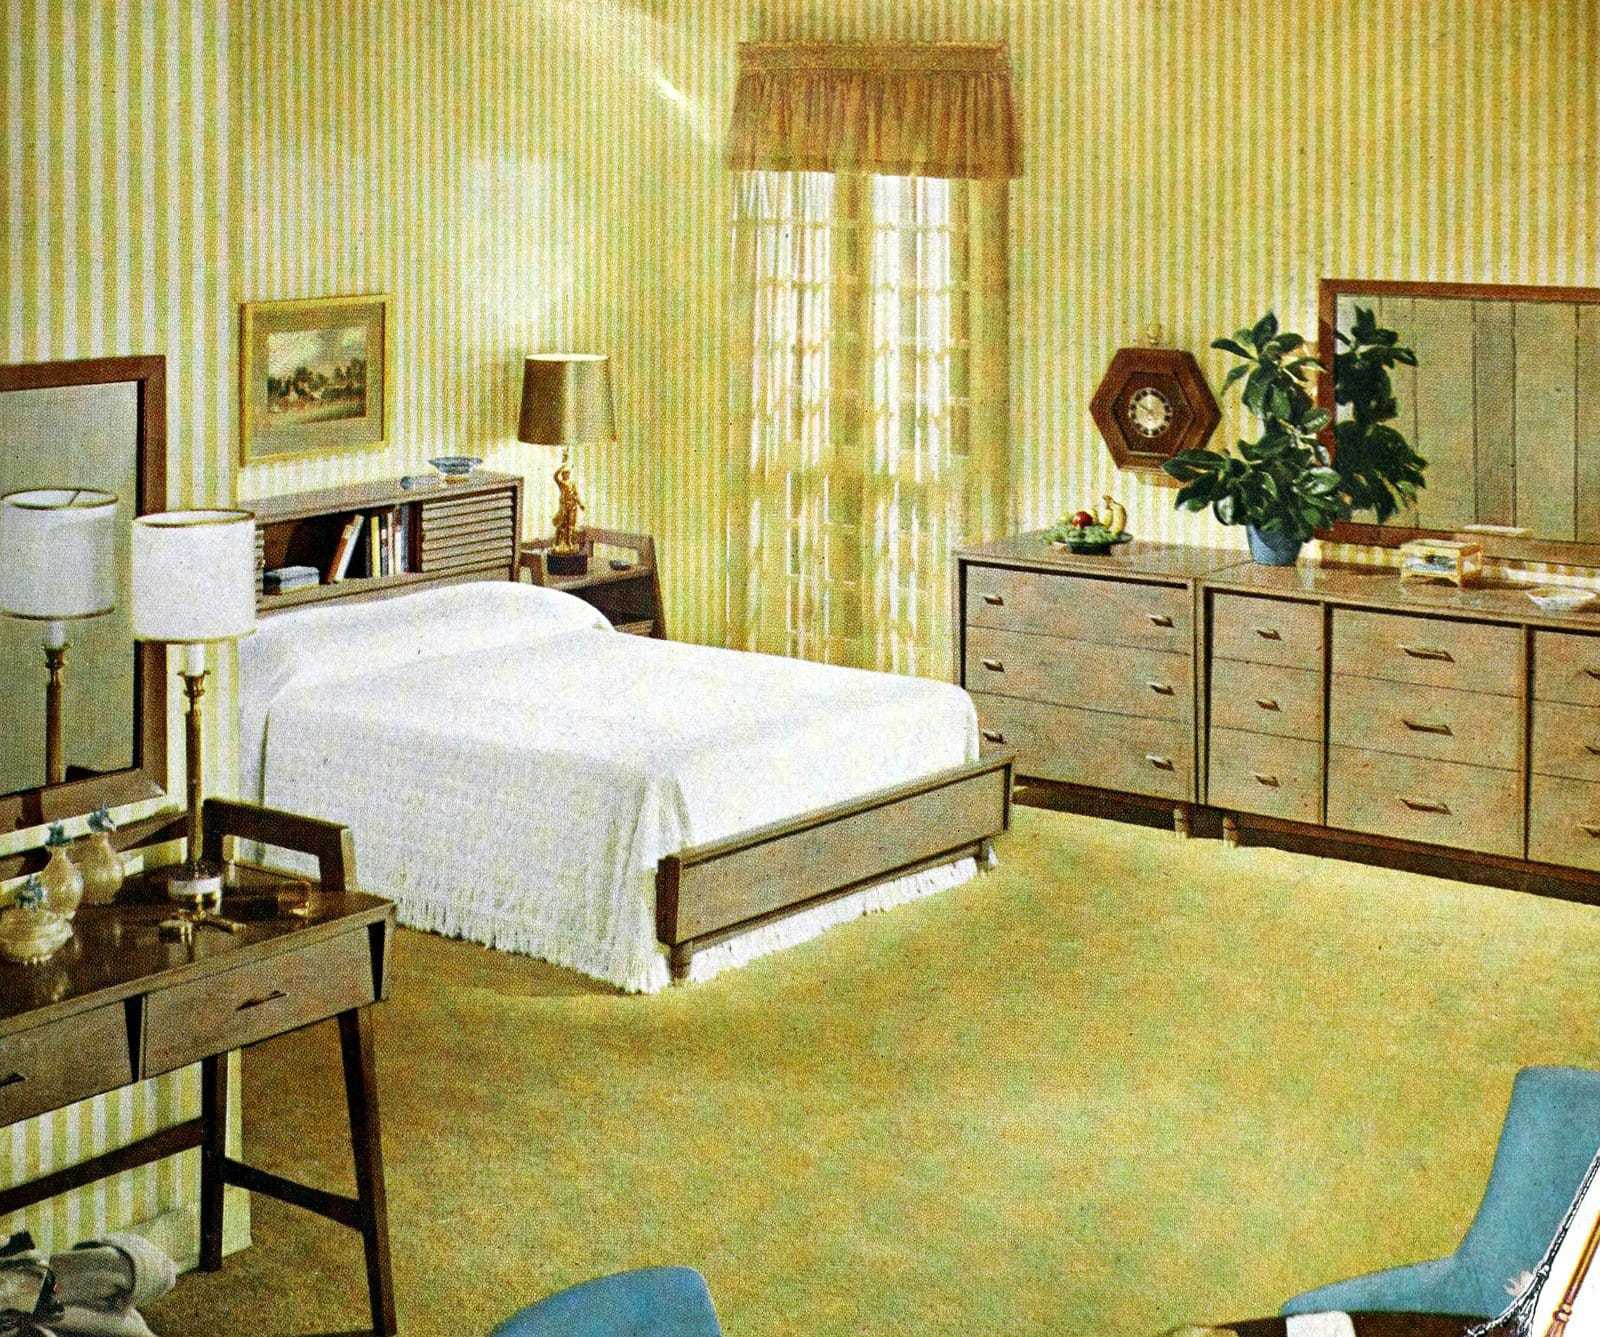 Vintage 50s master bedroom with yellow decor and white bedspread